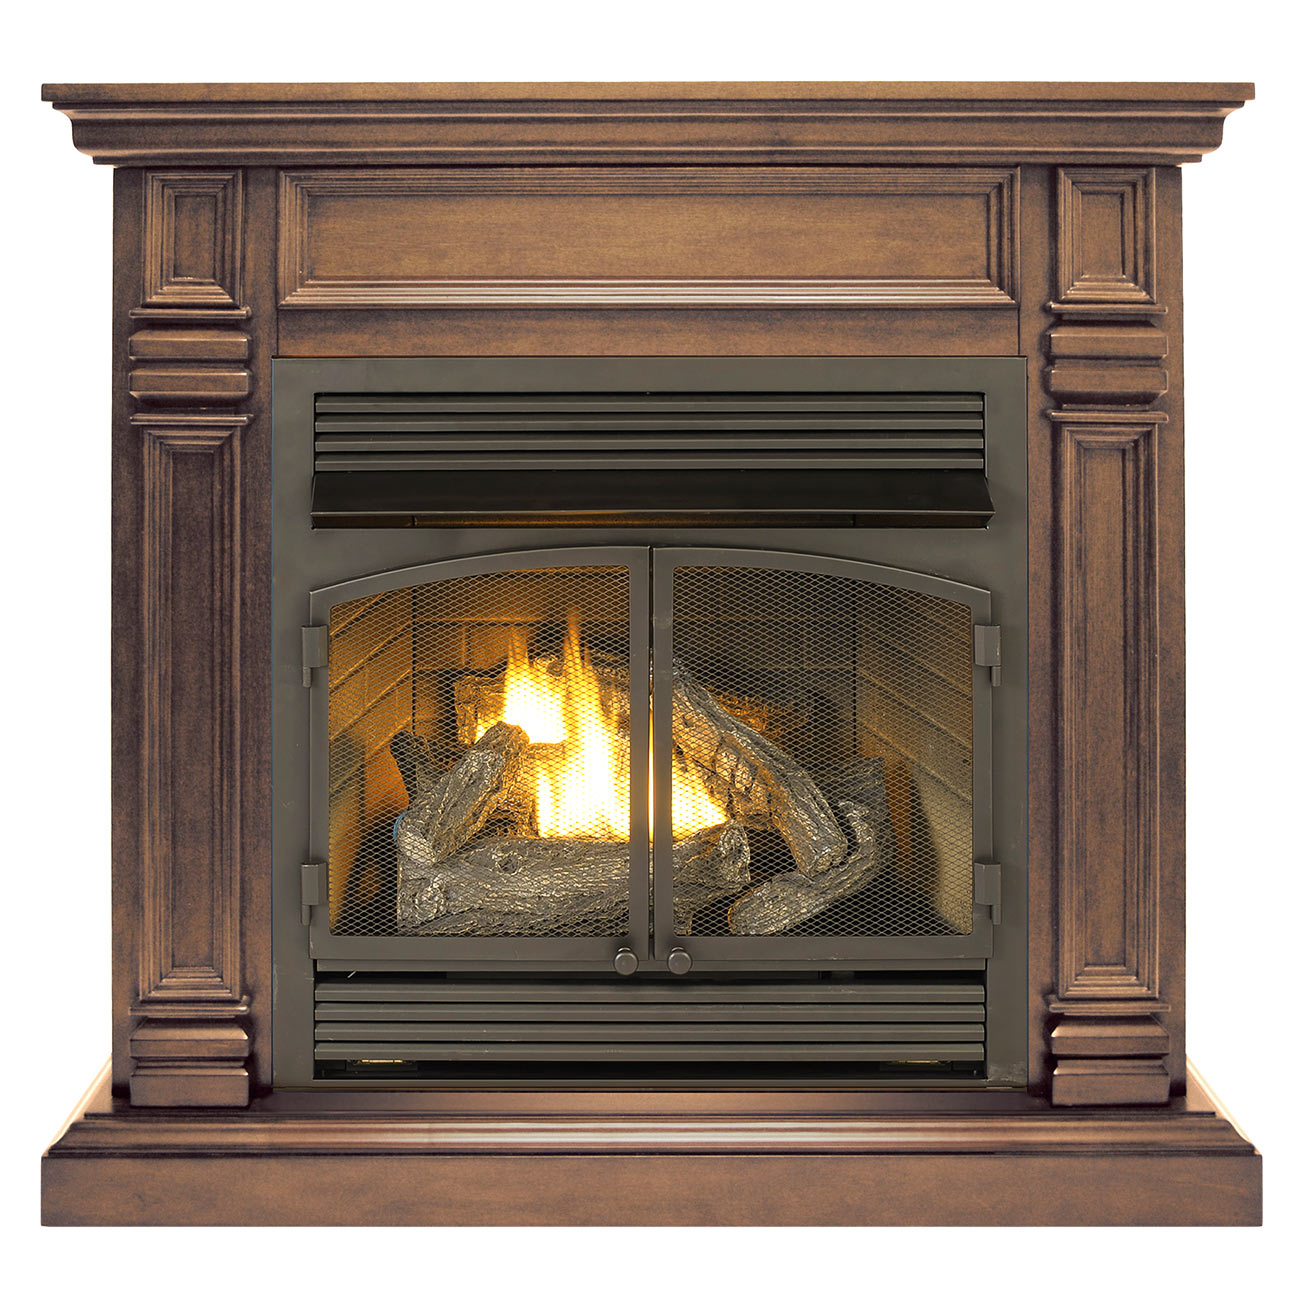 This Ventless Fireplace System with Dual Fuel Technology can quickly heat up a space of over 1